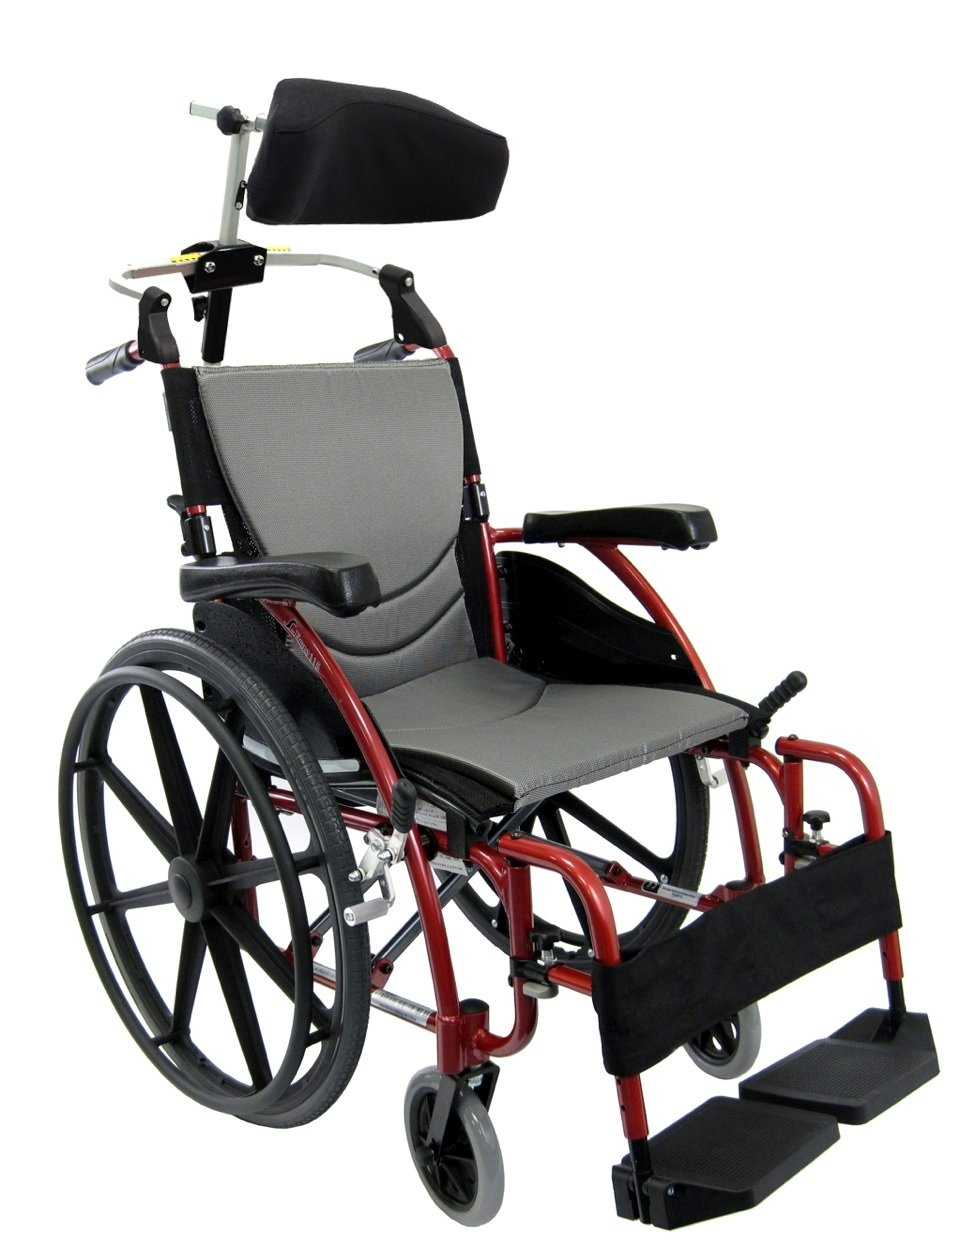 Karman Healthcare 27 Pounds S-115 Mag Wheel Red with Headrest, Rose Red, 27 Pound